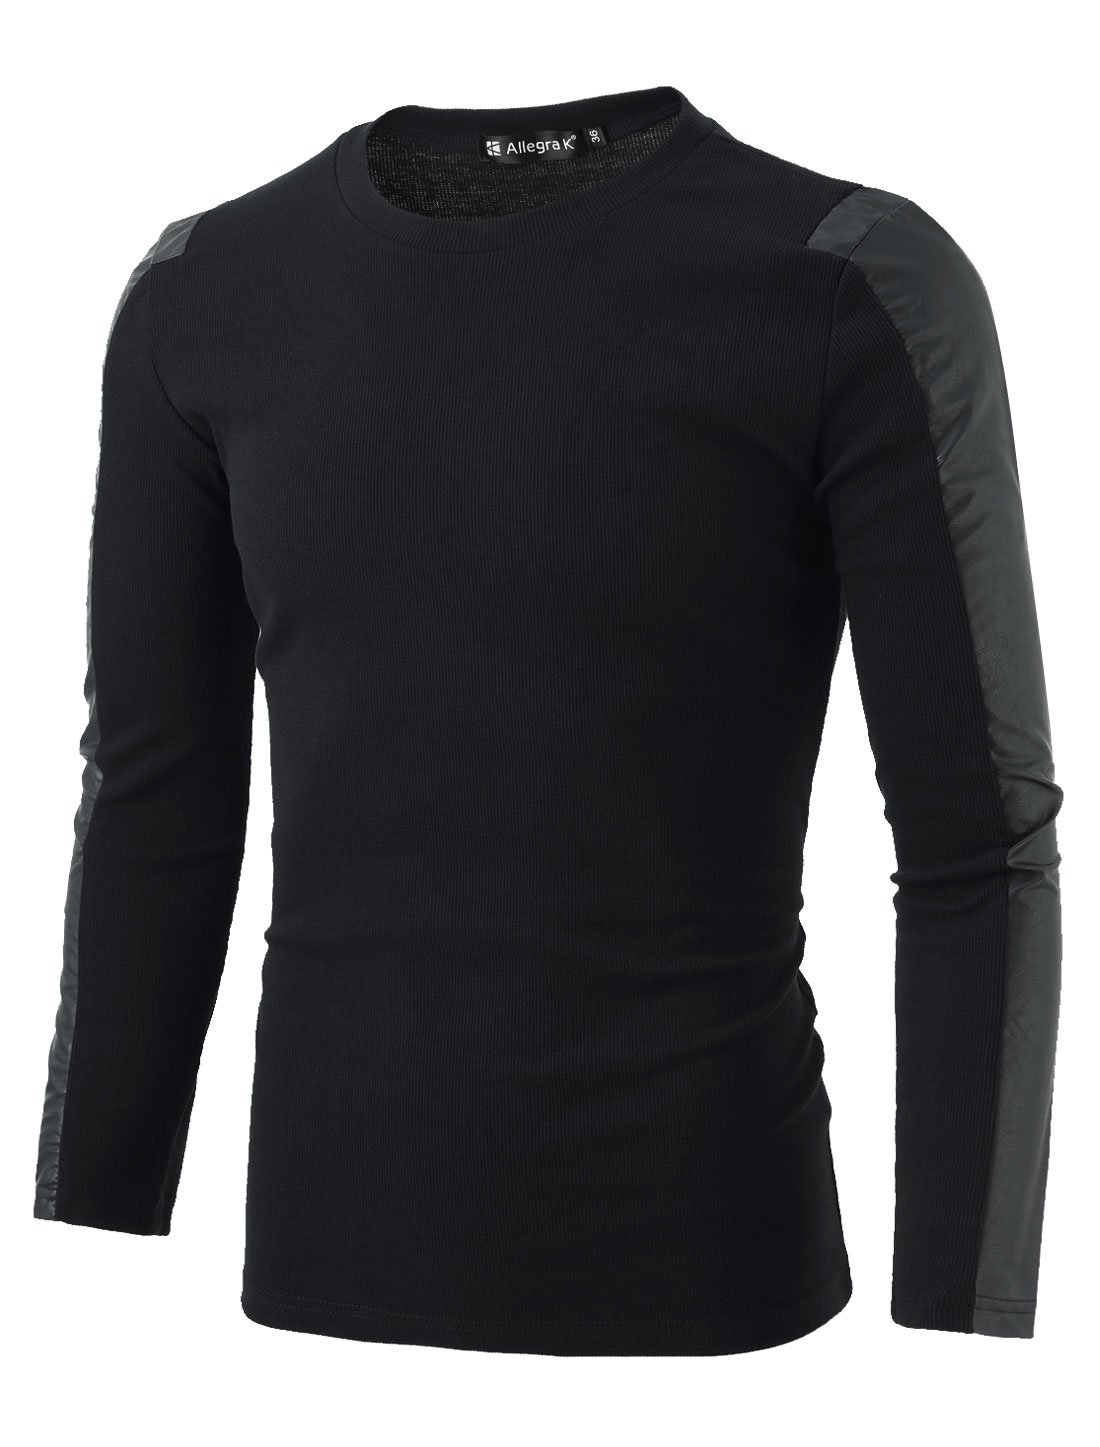 Mens Black Round Neck Long-sleeved Ribbing Design Slim Top Shirt M